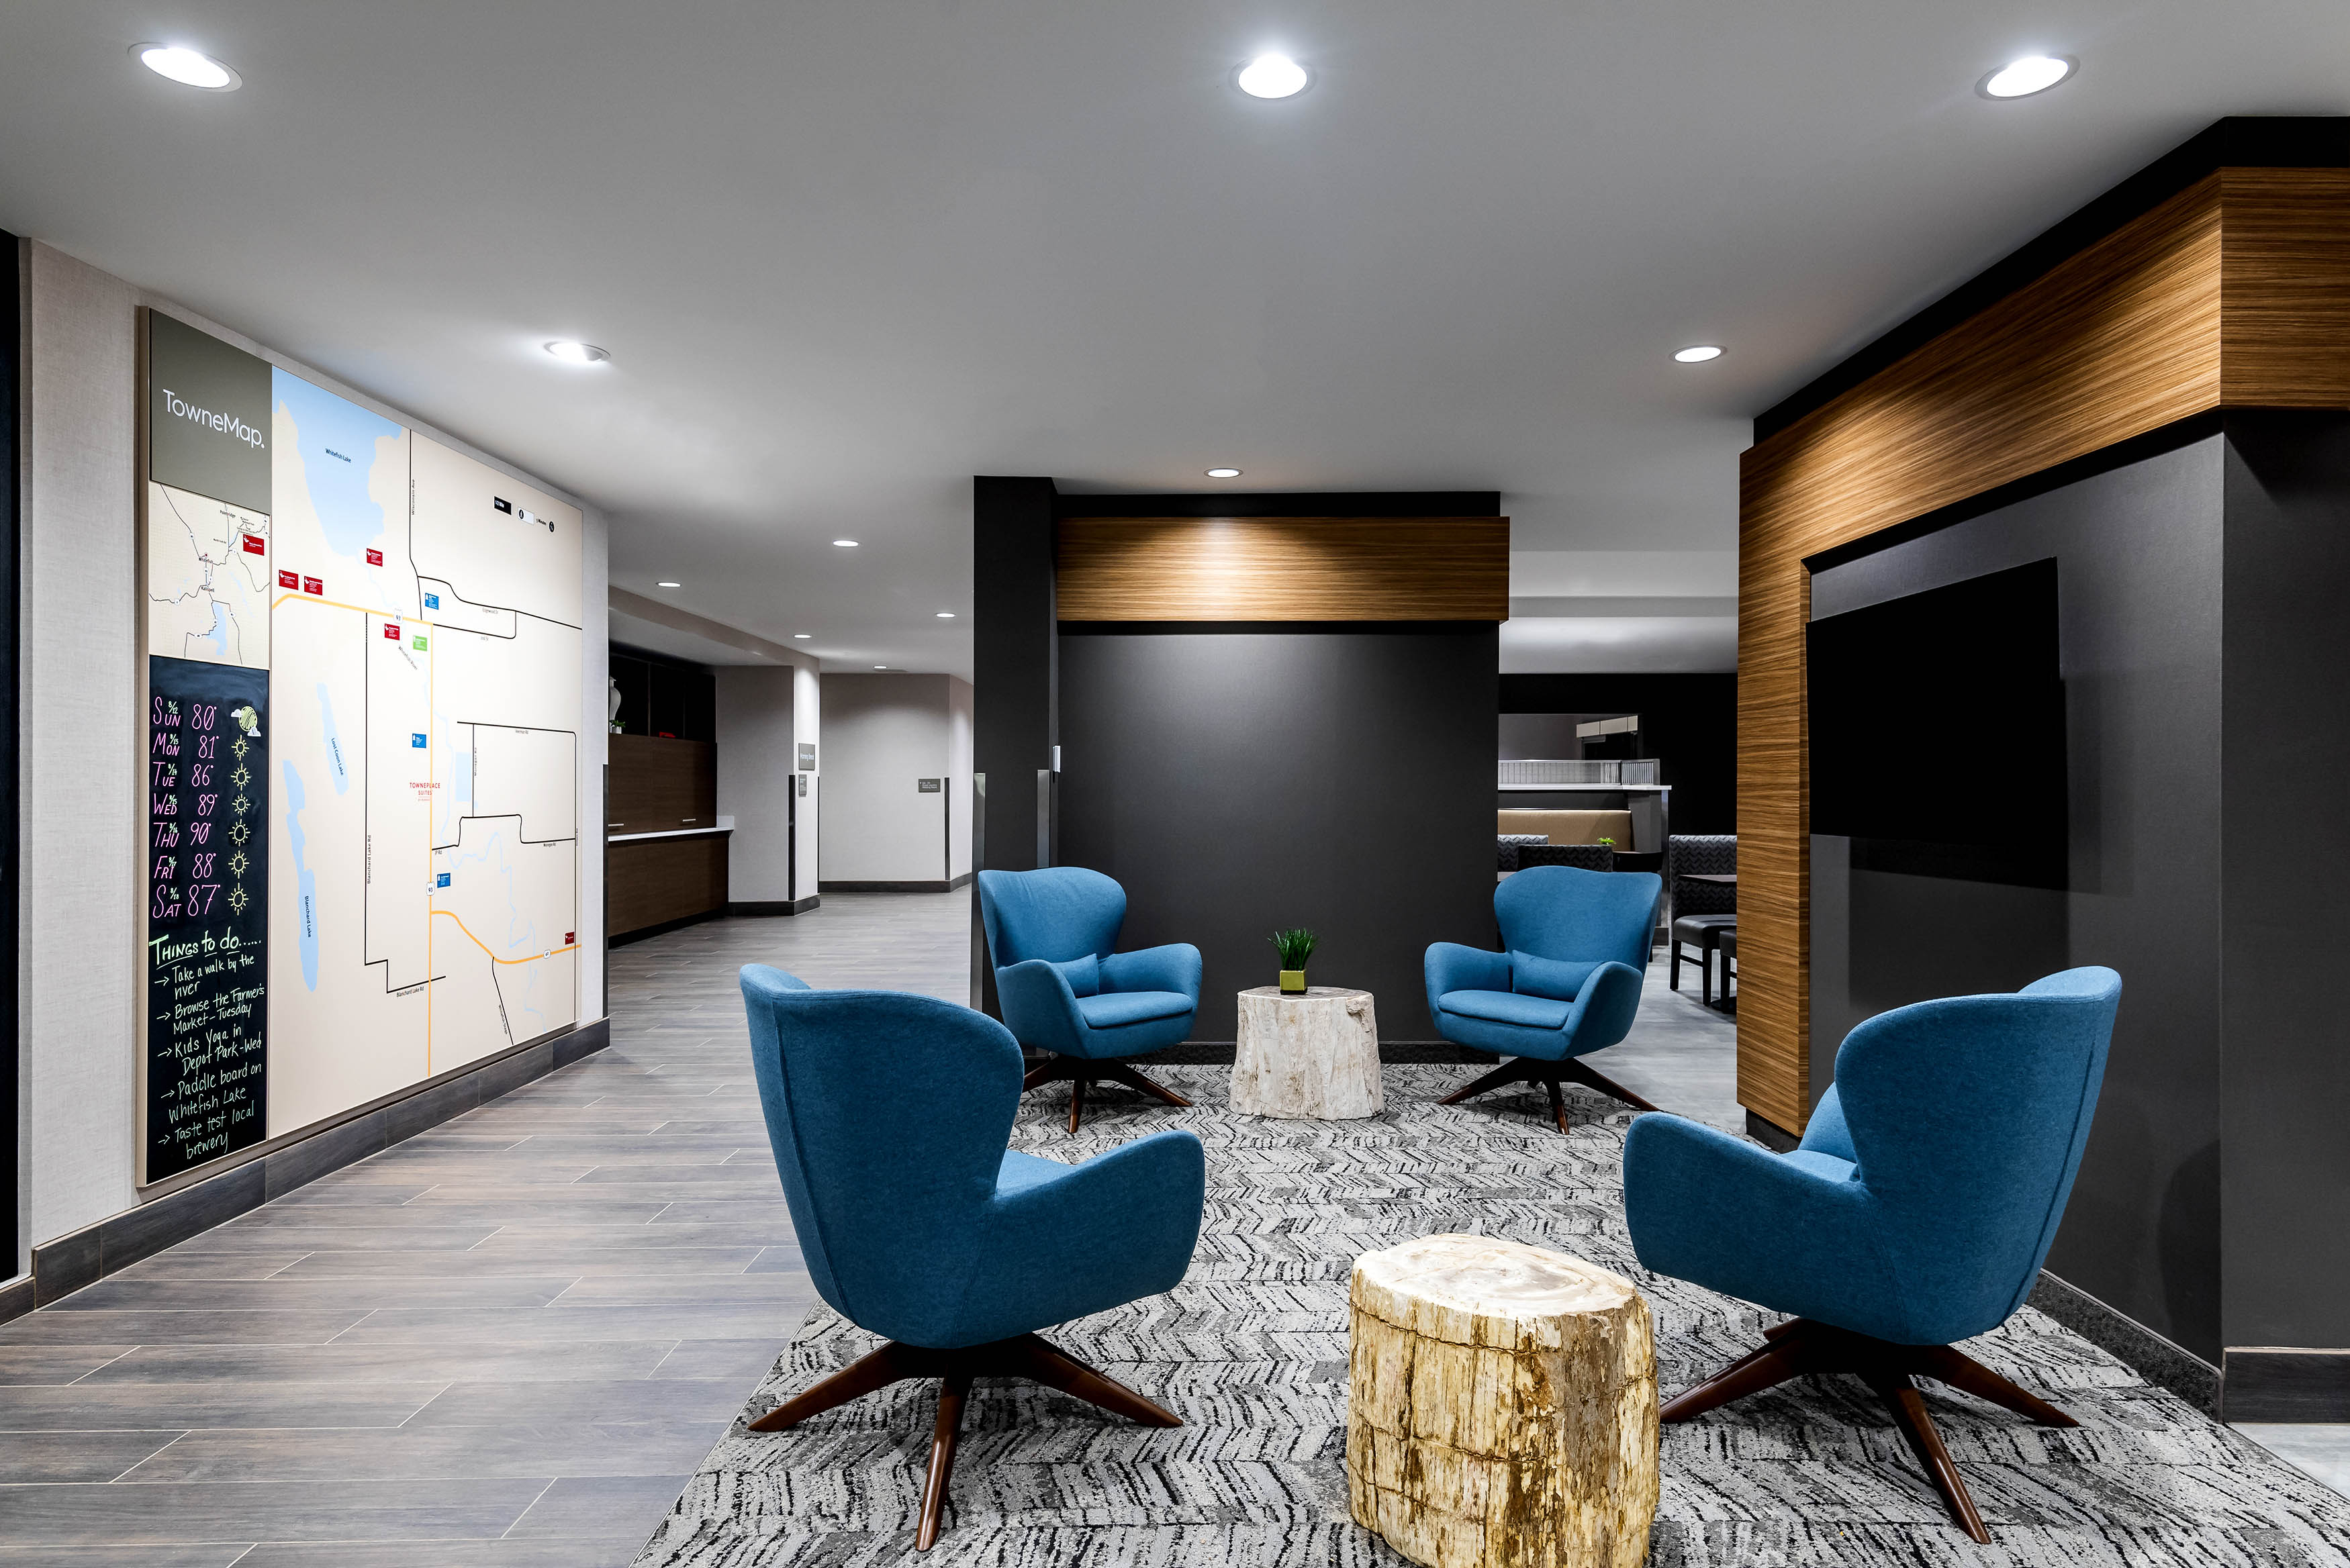 Towne-place-suite-marriott-hotels-towneplace-hotel-whitefish-montana-lobby